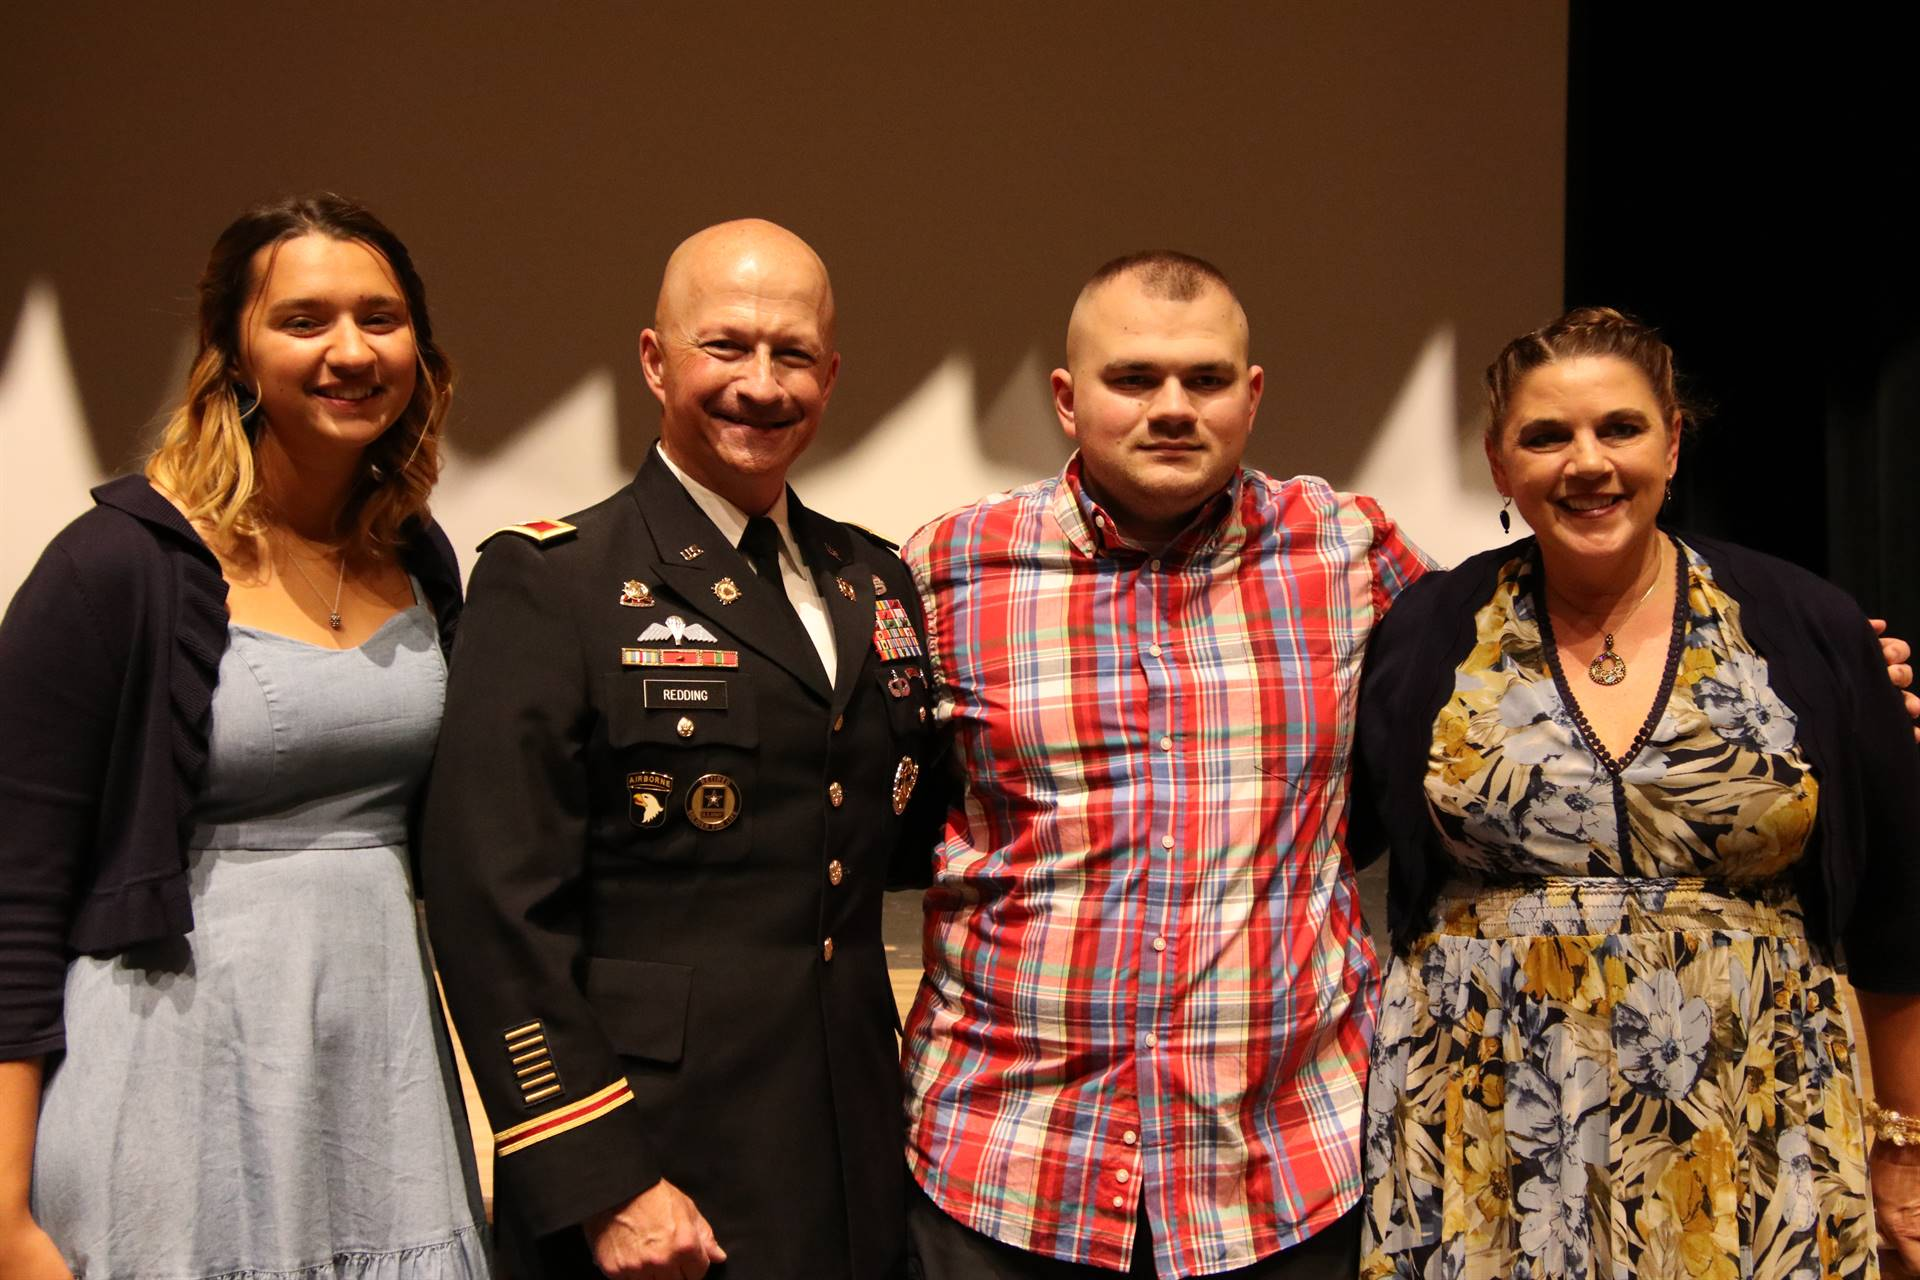 Hall of Distinction honoree - Redding with family